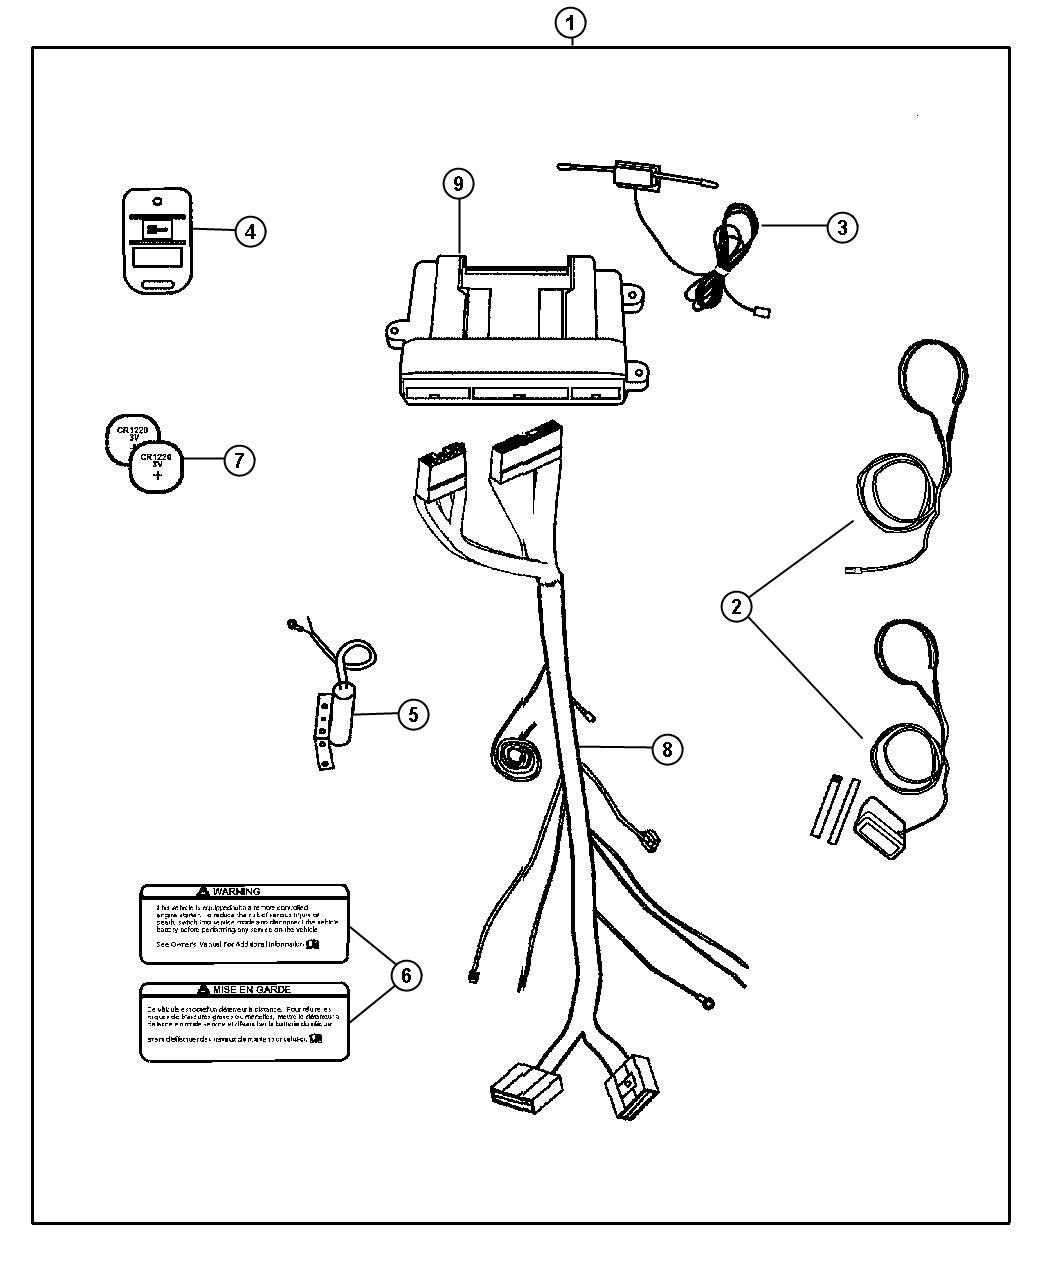 2005 ford f150 remote start wiring diagram sno pro 3000 diagrams dodge ram free